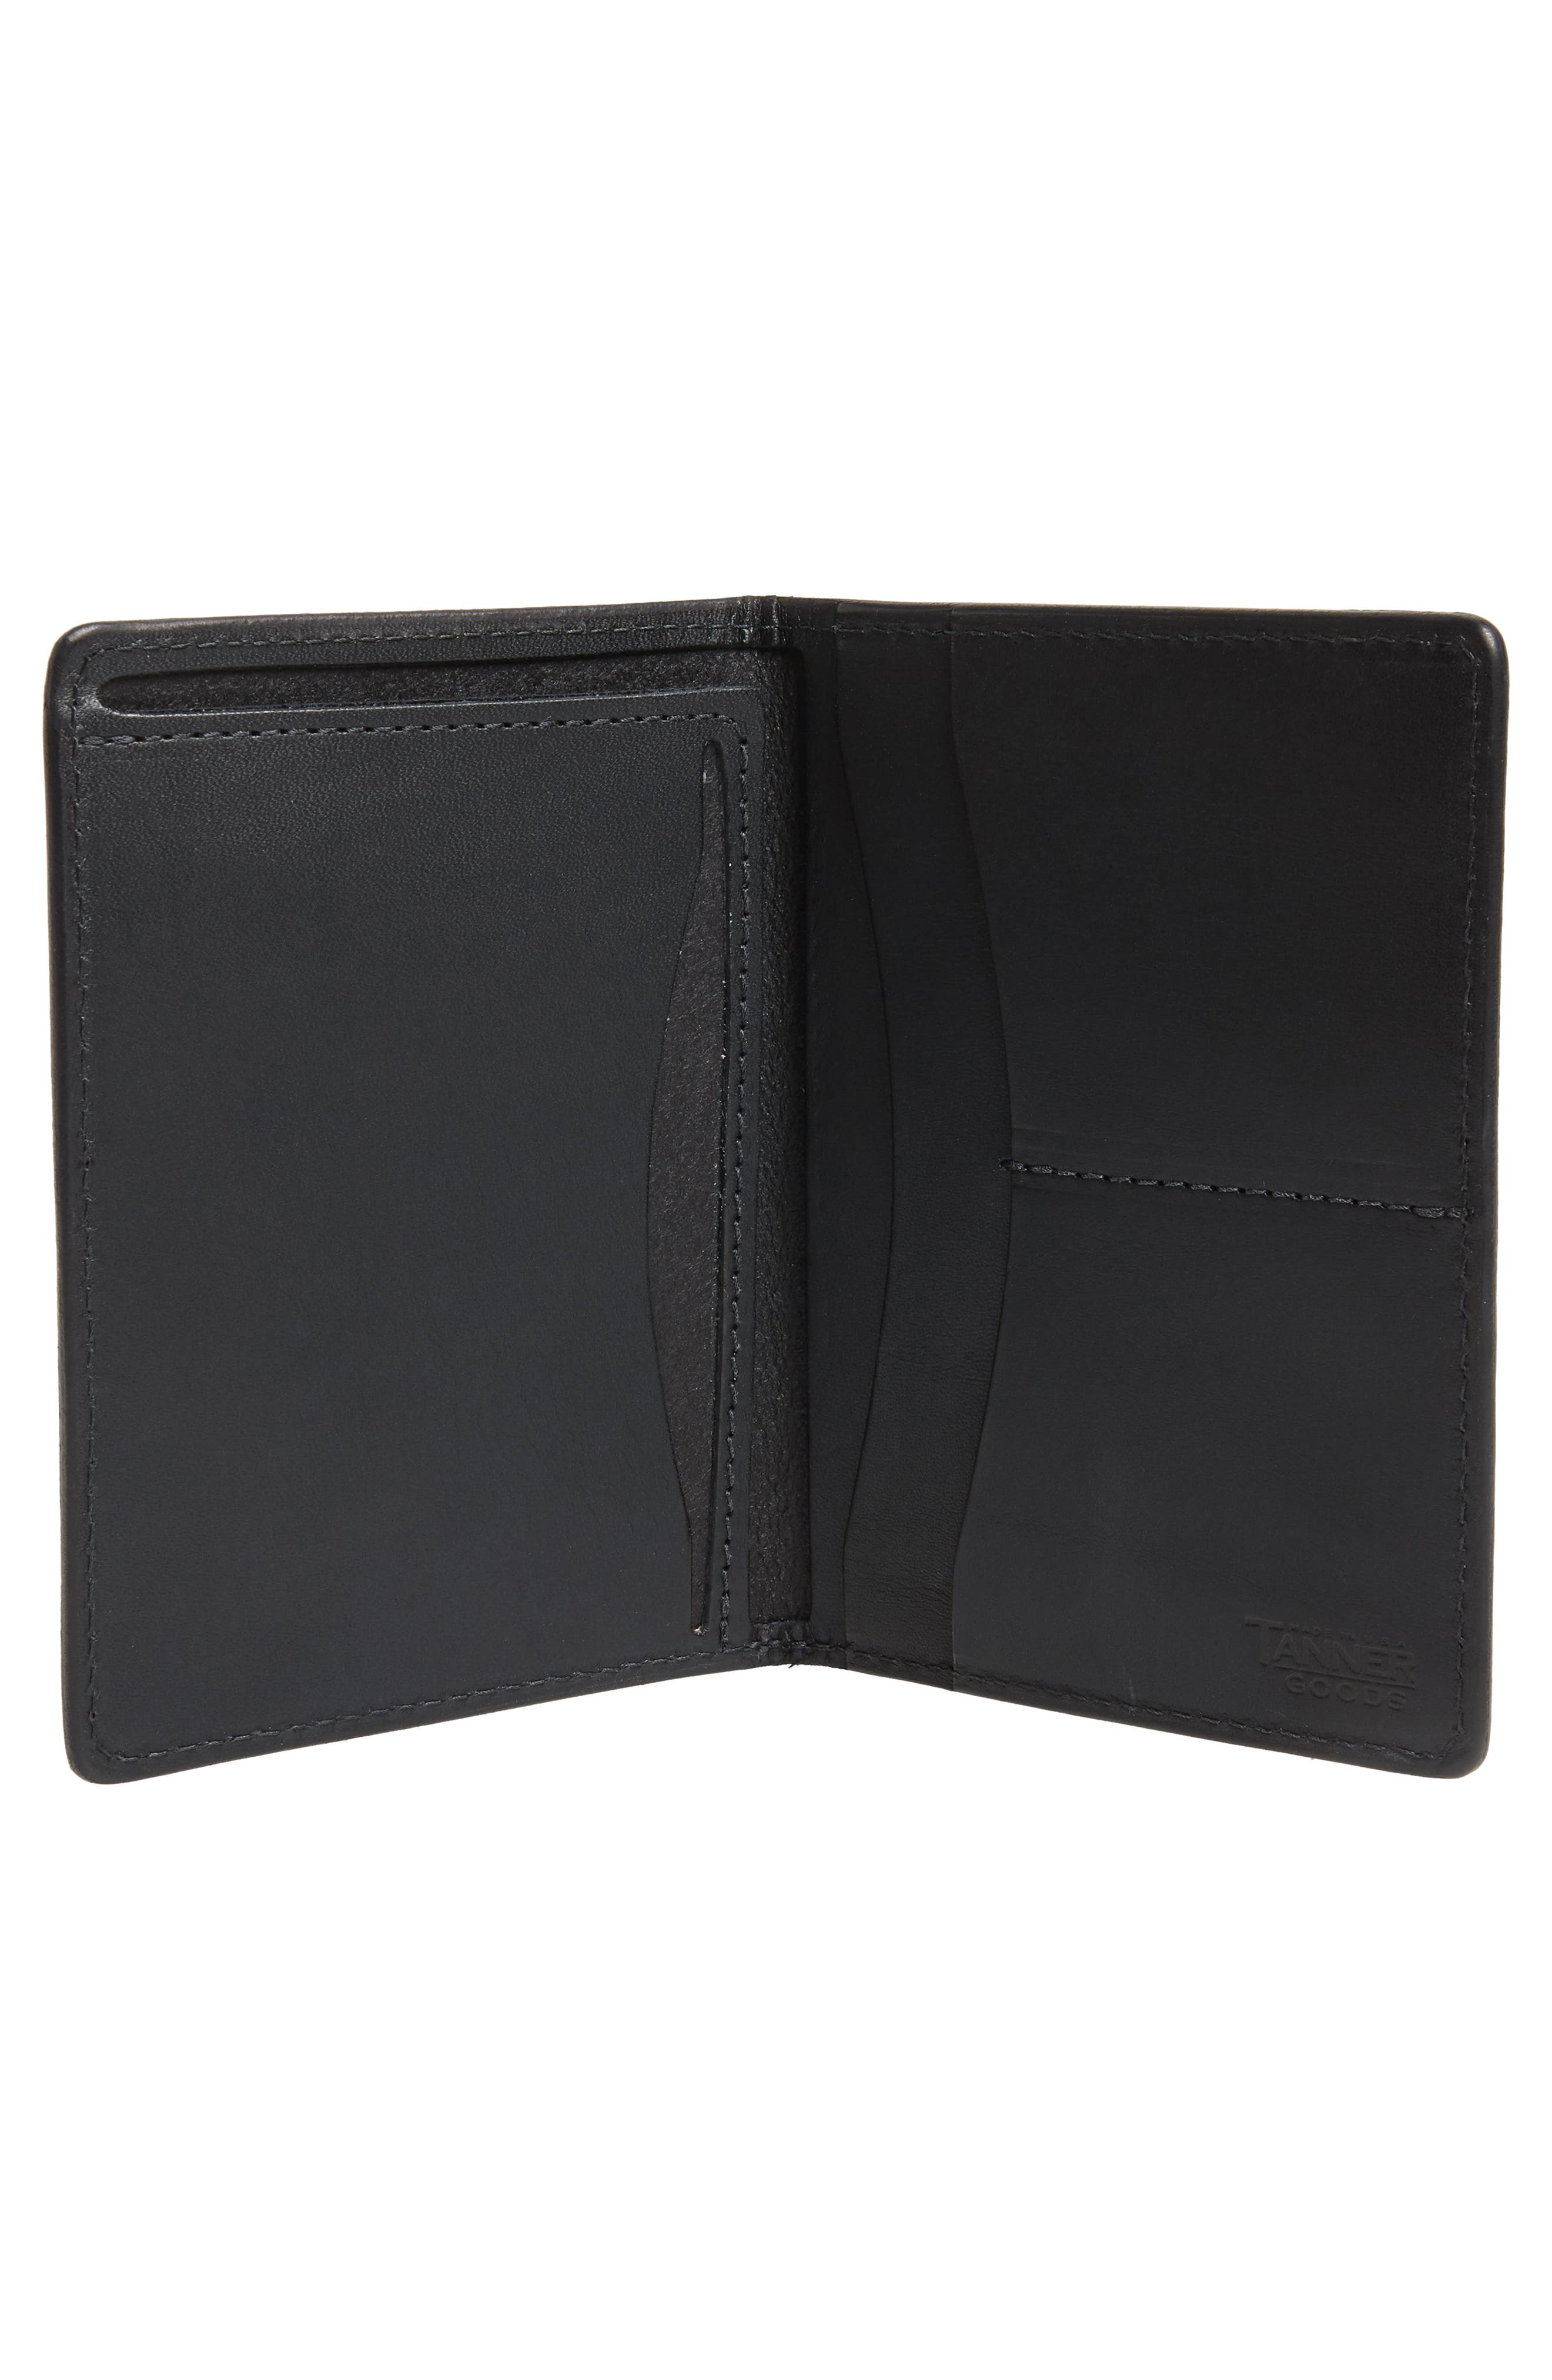 Leather Travel Wallet,                             Alternate thumbnail 2, color,                             BLACK